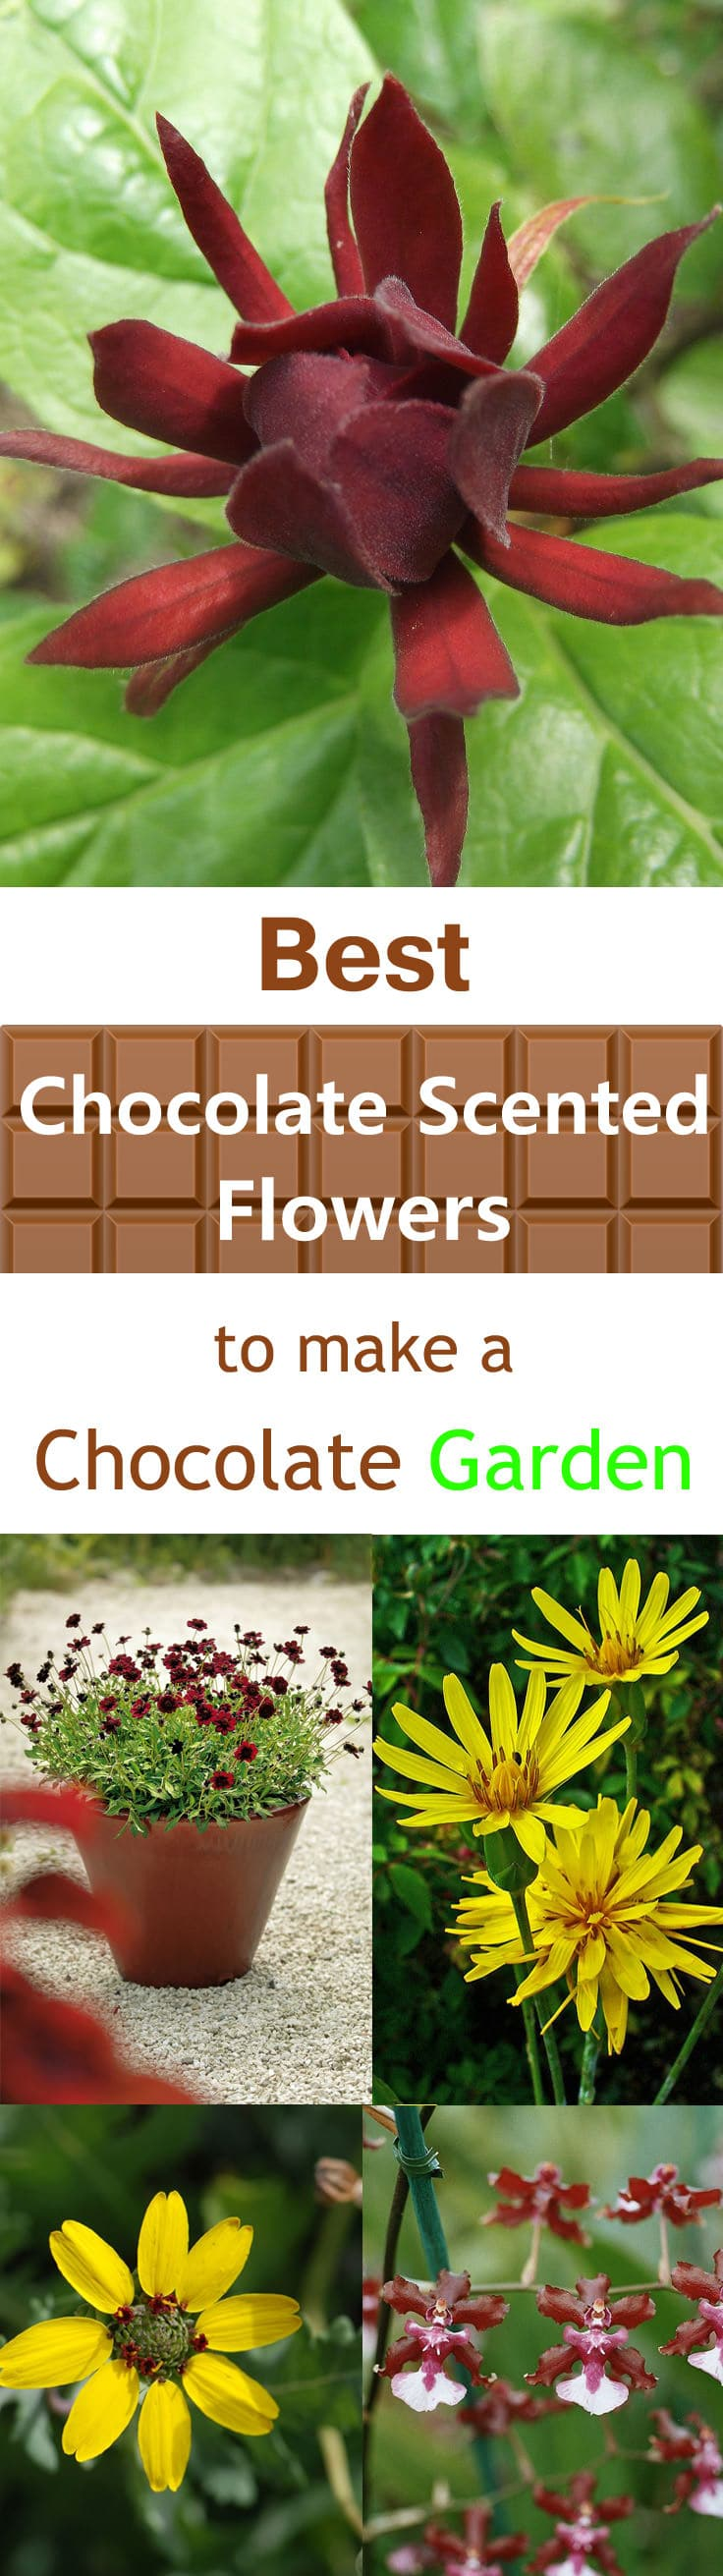 If you love chocolates grow chocolate scented flowers, check out this list of plants and flowers to get an idea.